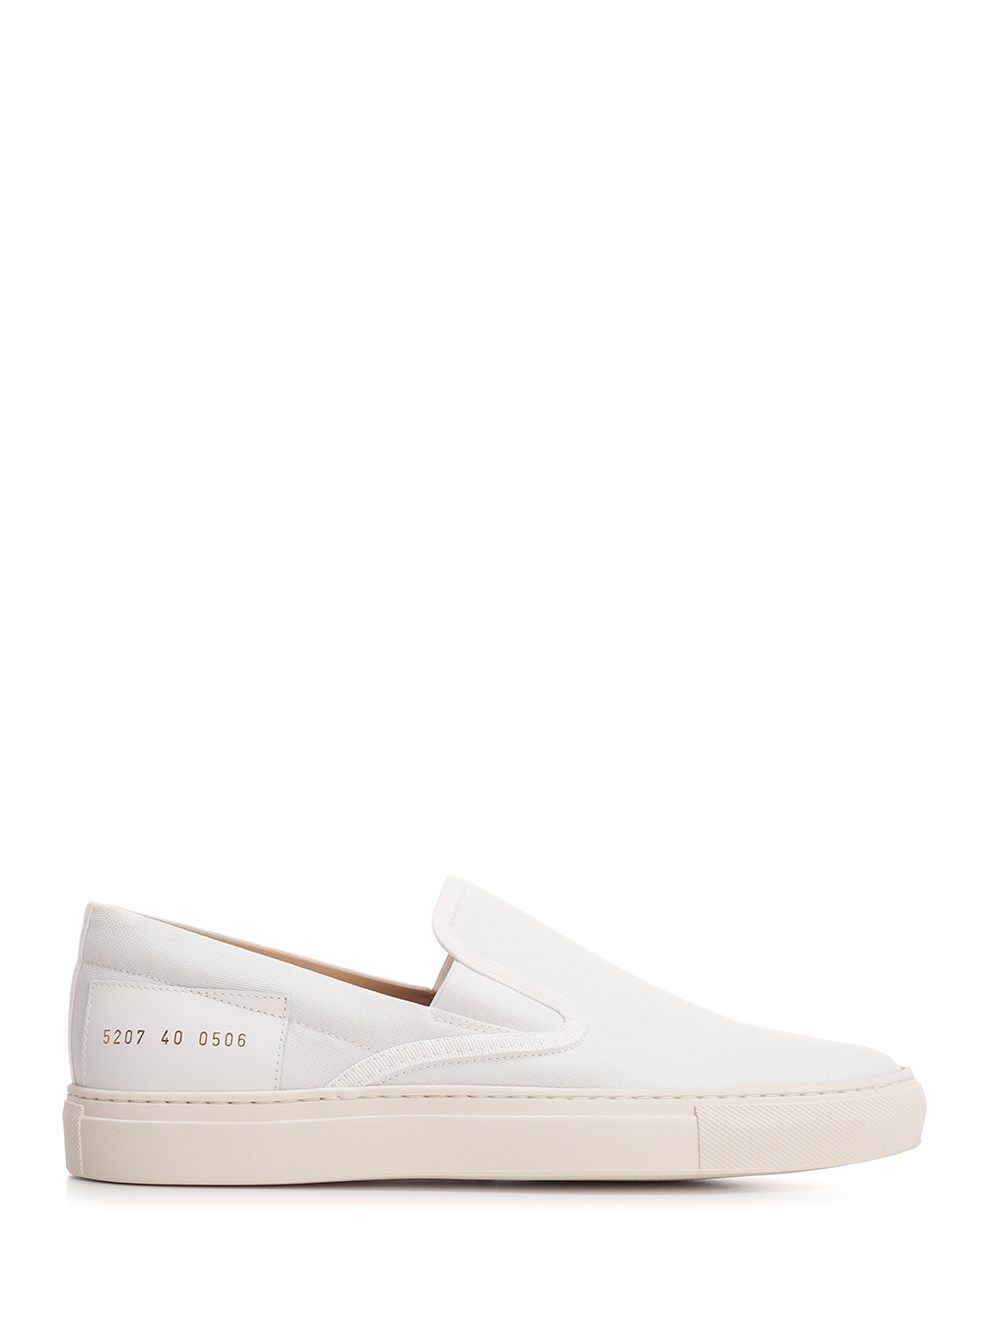 Common Projects Sneakers COMMON PROJECTS MEN'S WHITE OTHER MATERIALS SNEAKERS